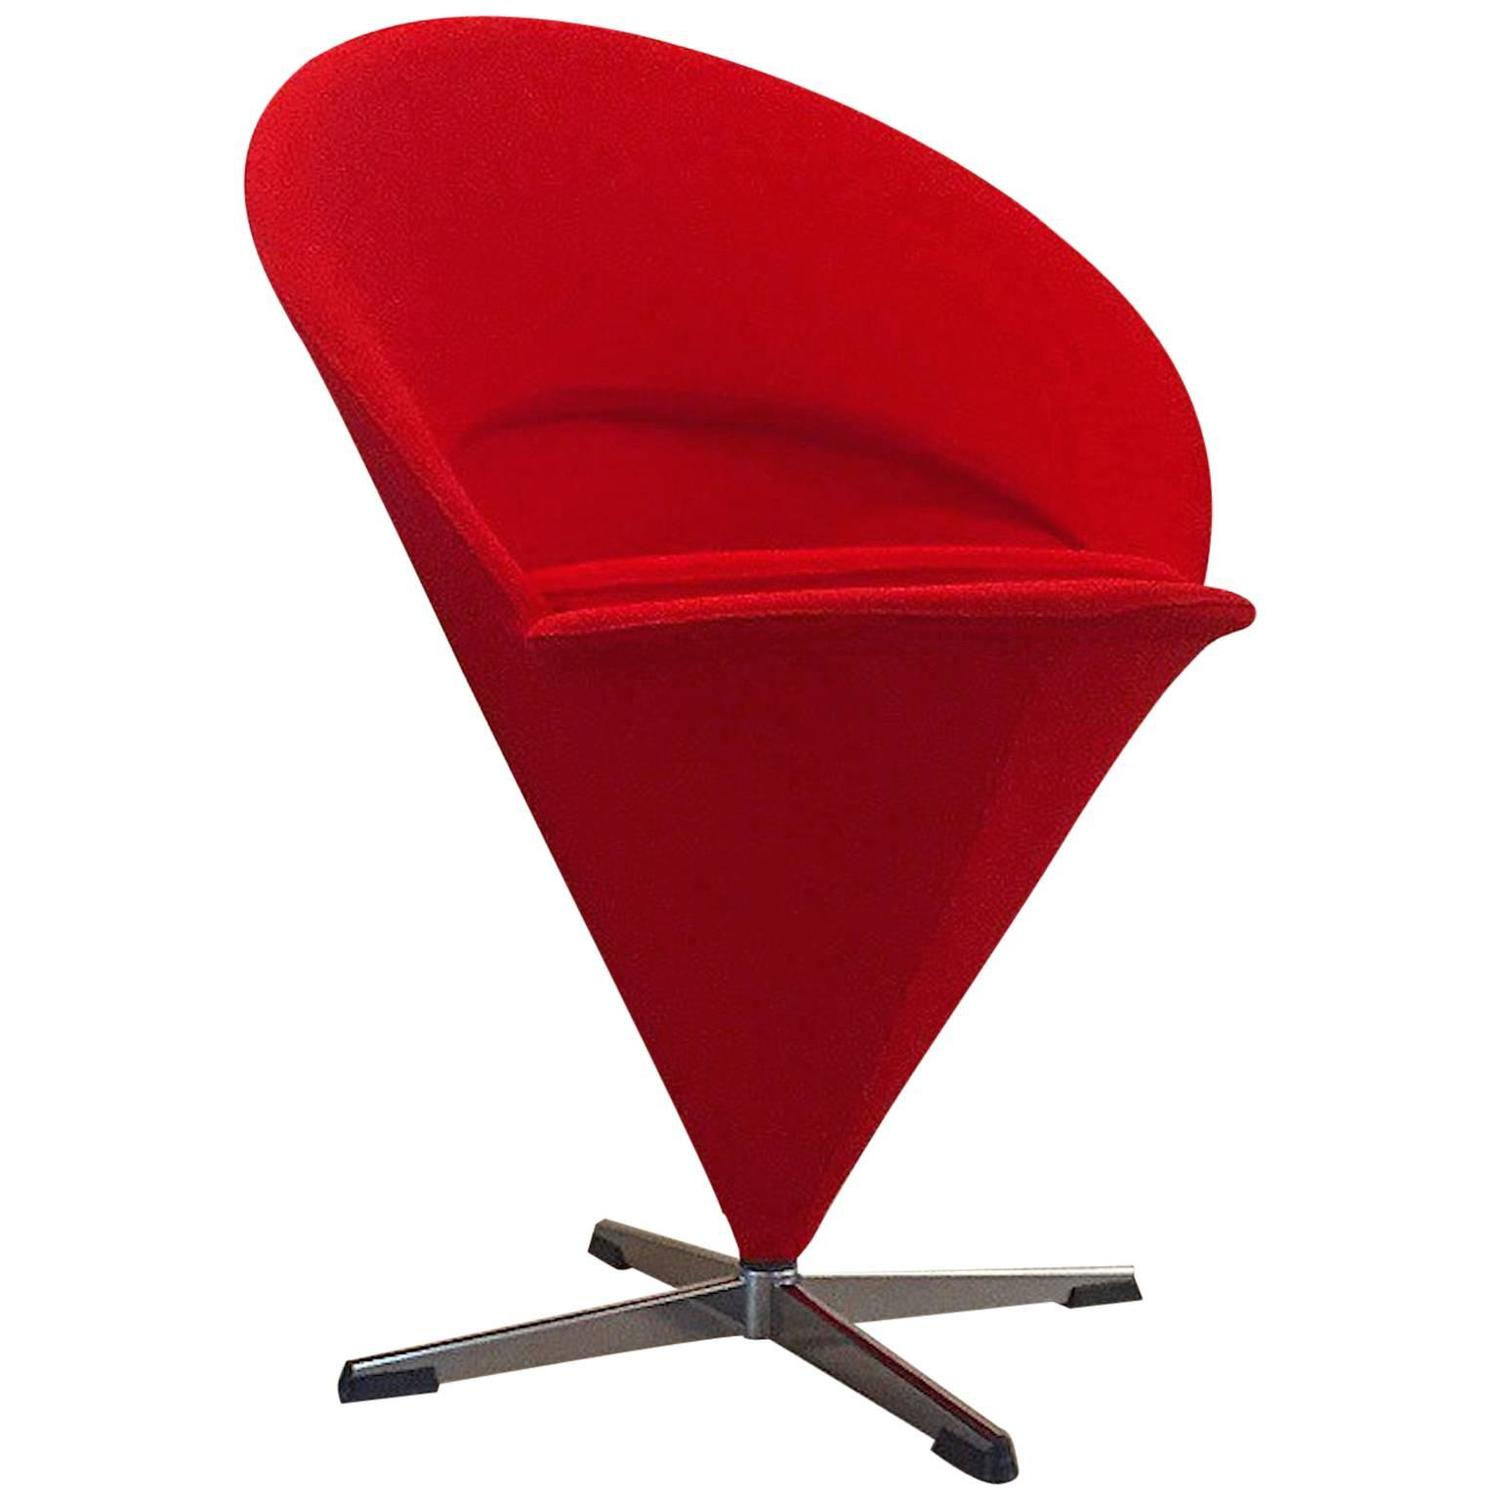 danish design mid century verner panton k series cone chair red wool fabric for sale at 1stdibs. Black Bedroom Furniture Sets. Home Design Ideas